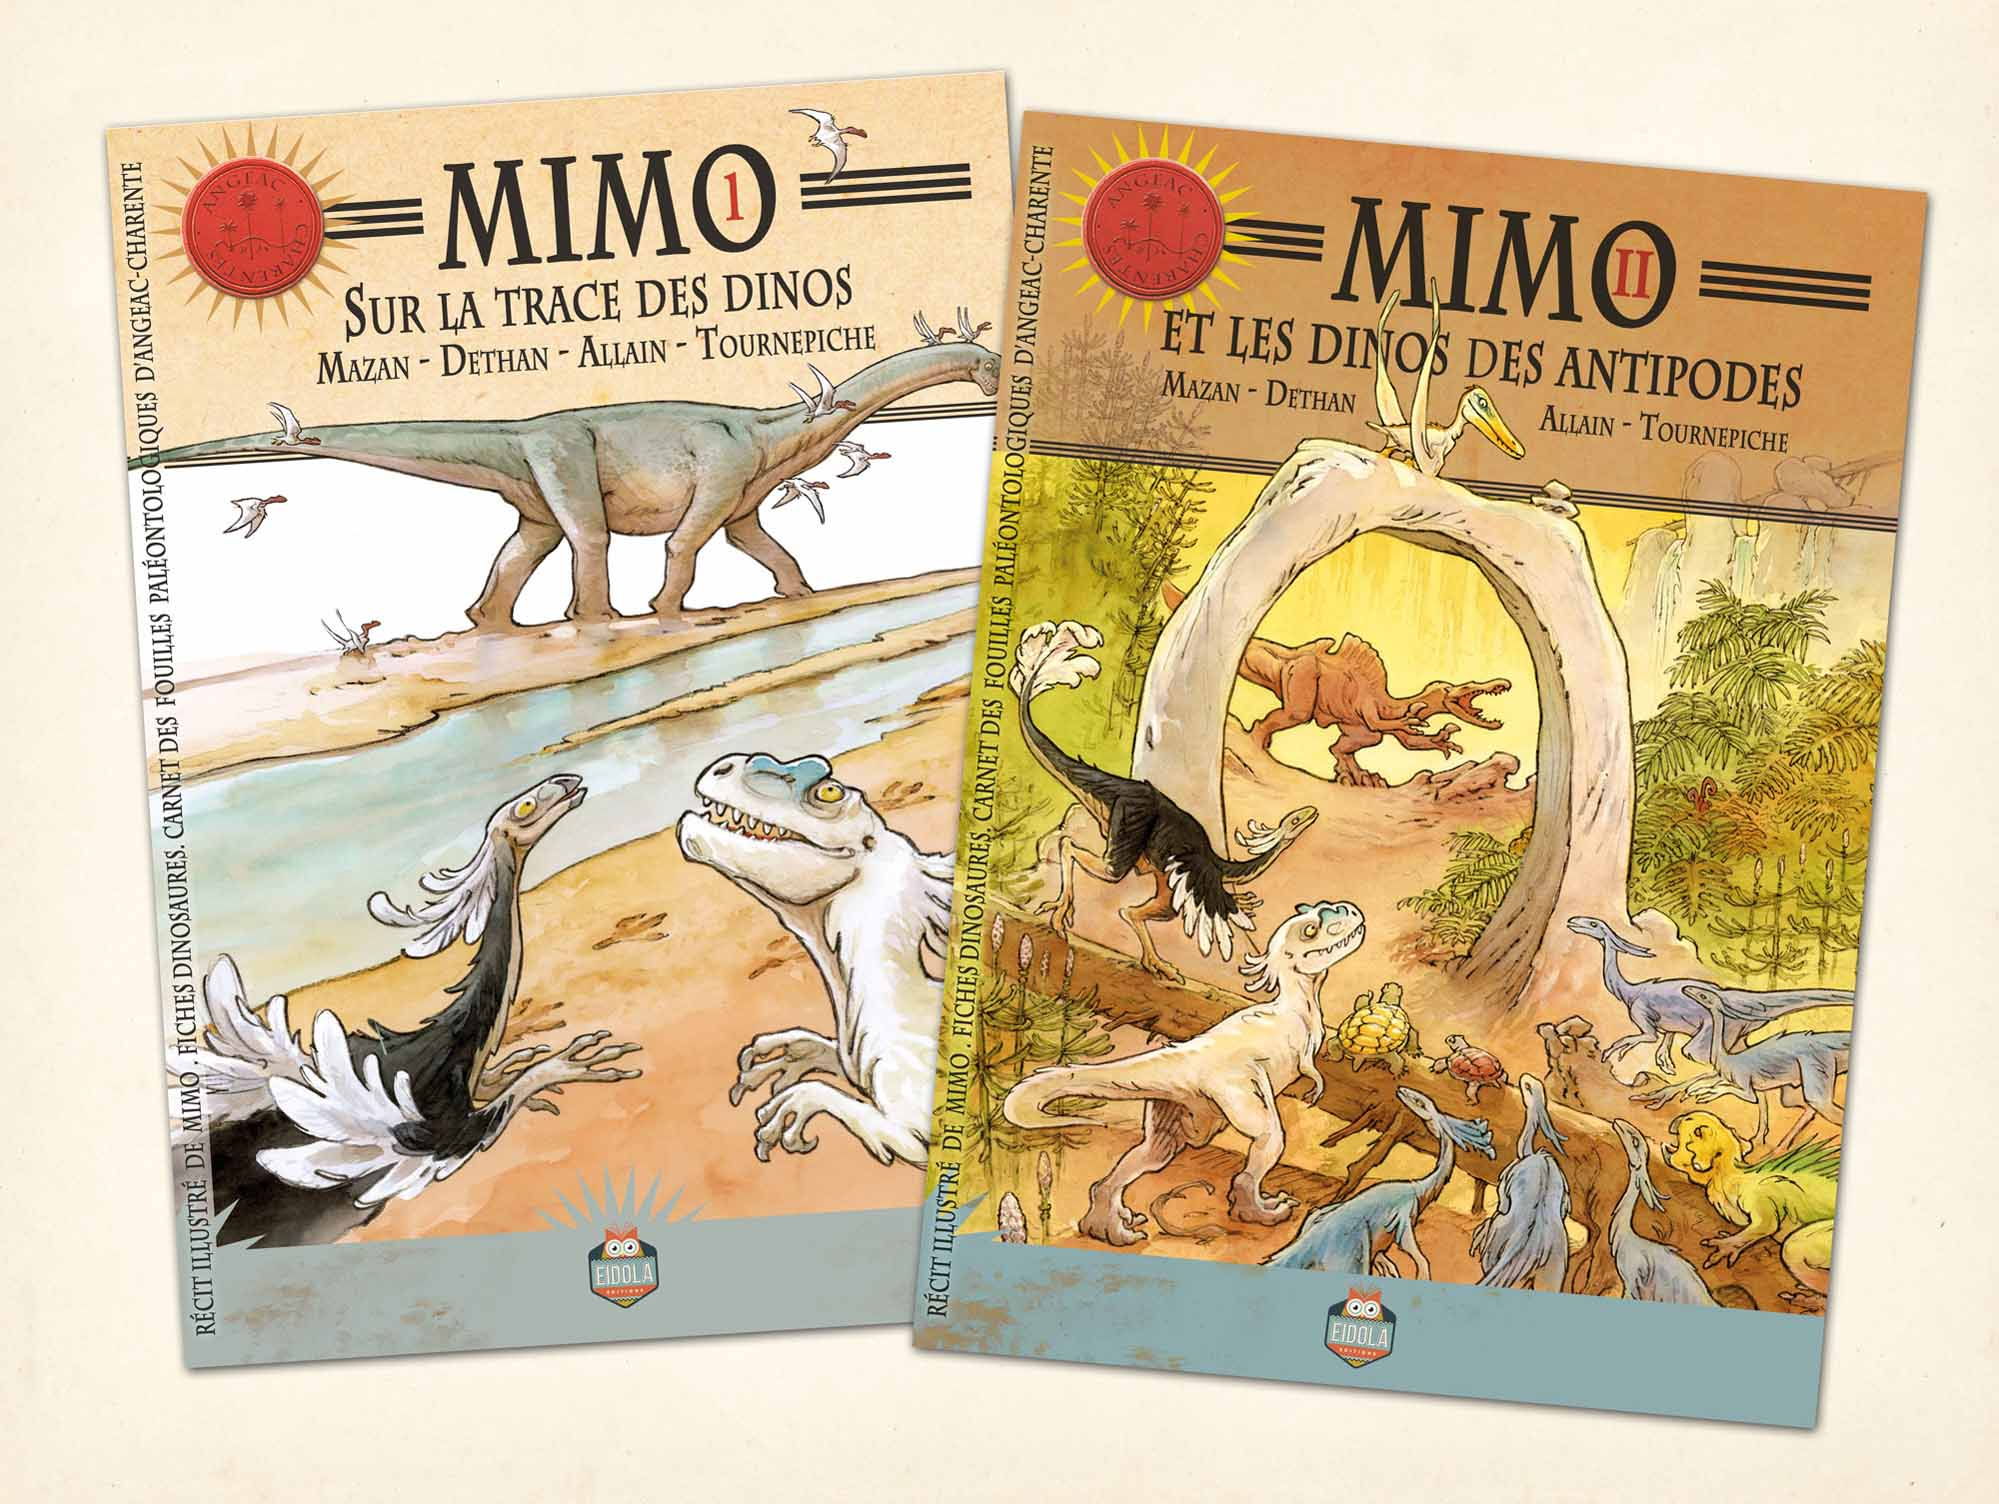 Mimo1 et Mimo2